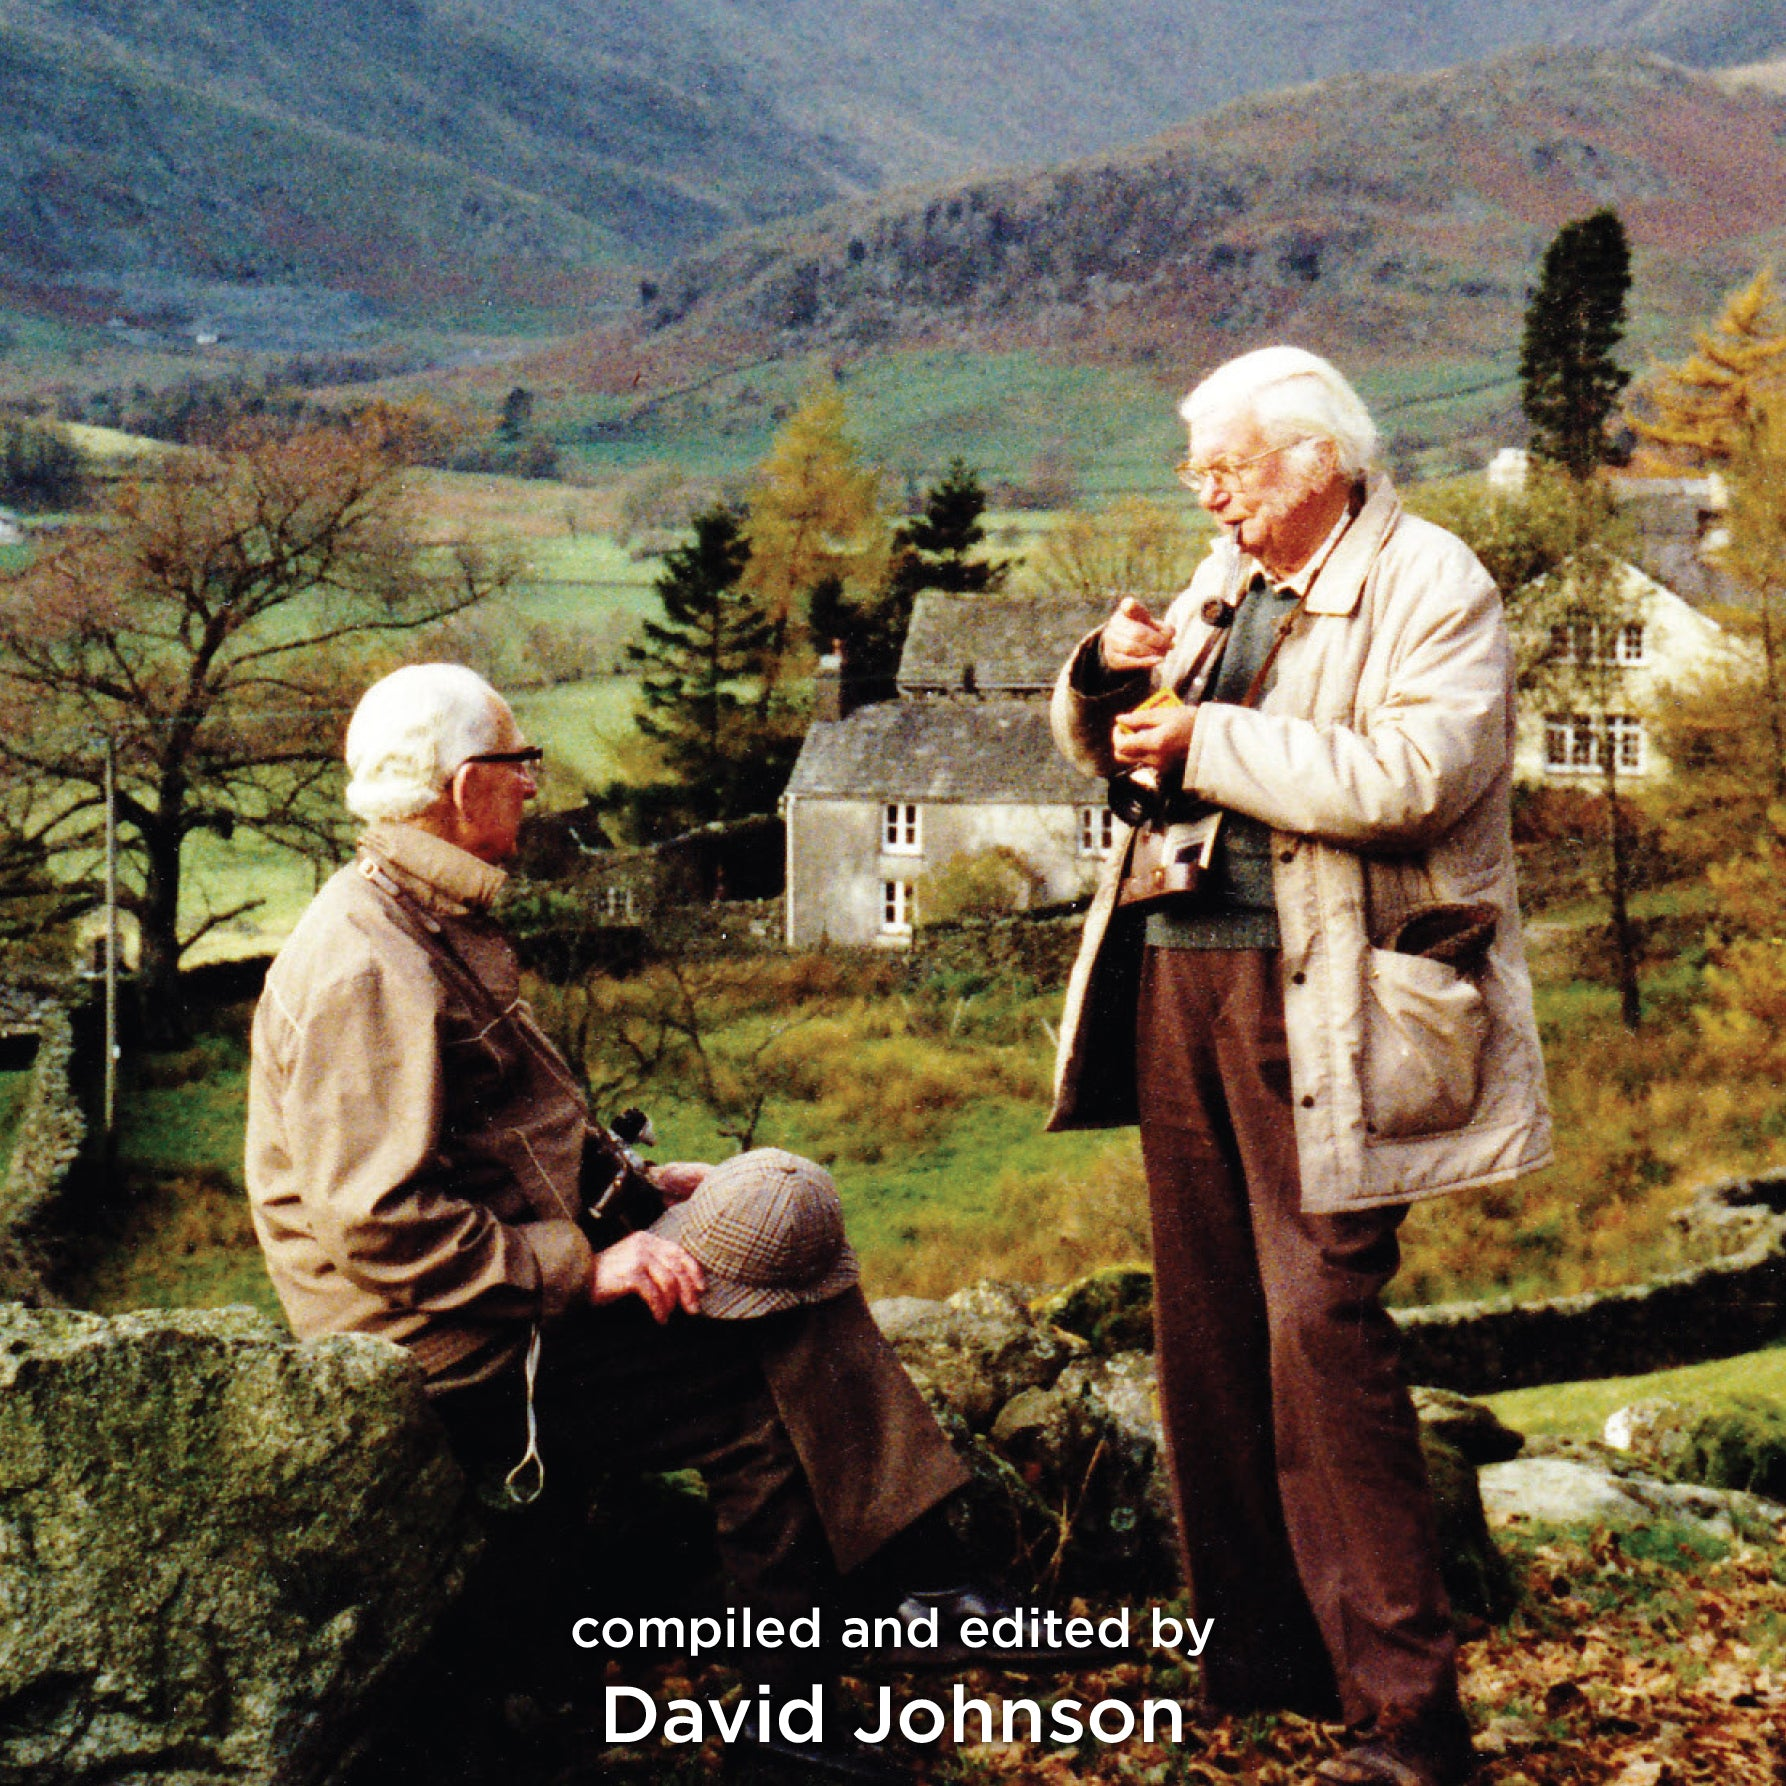 Image for article Encounters with Wainwright by David Johnson